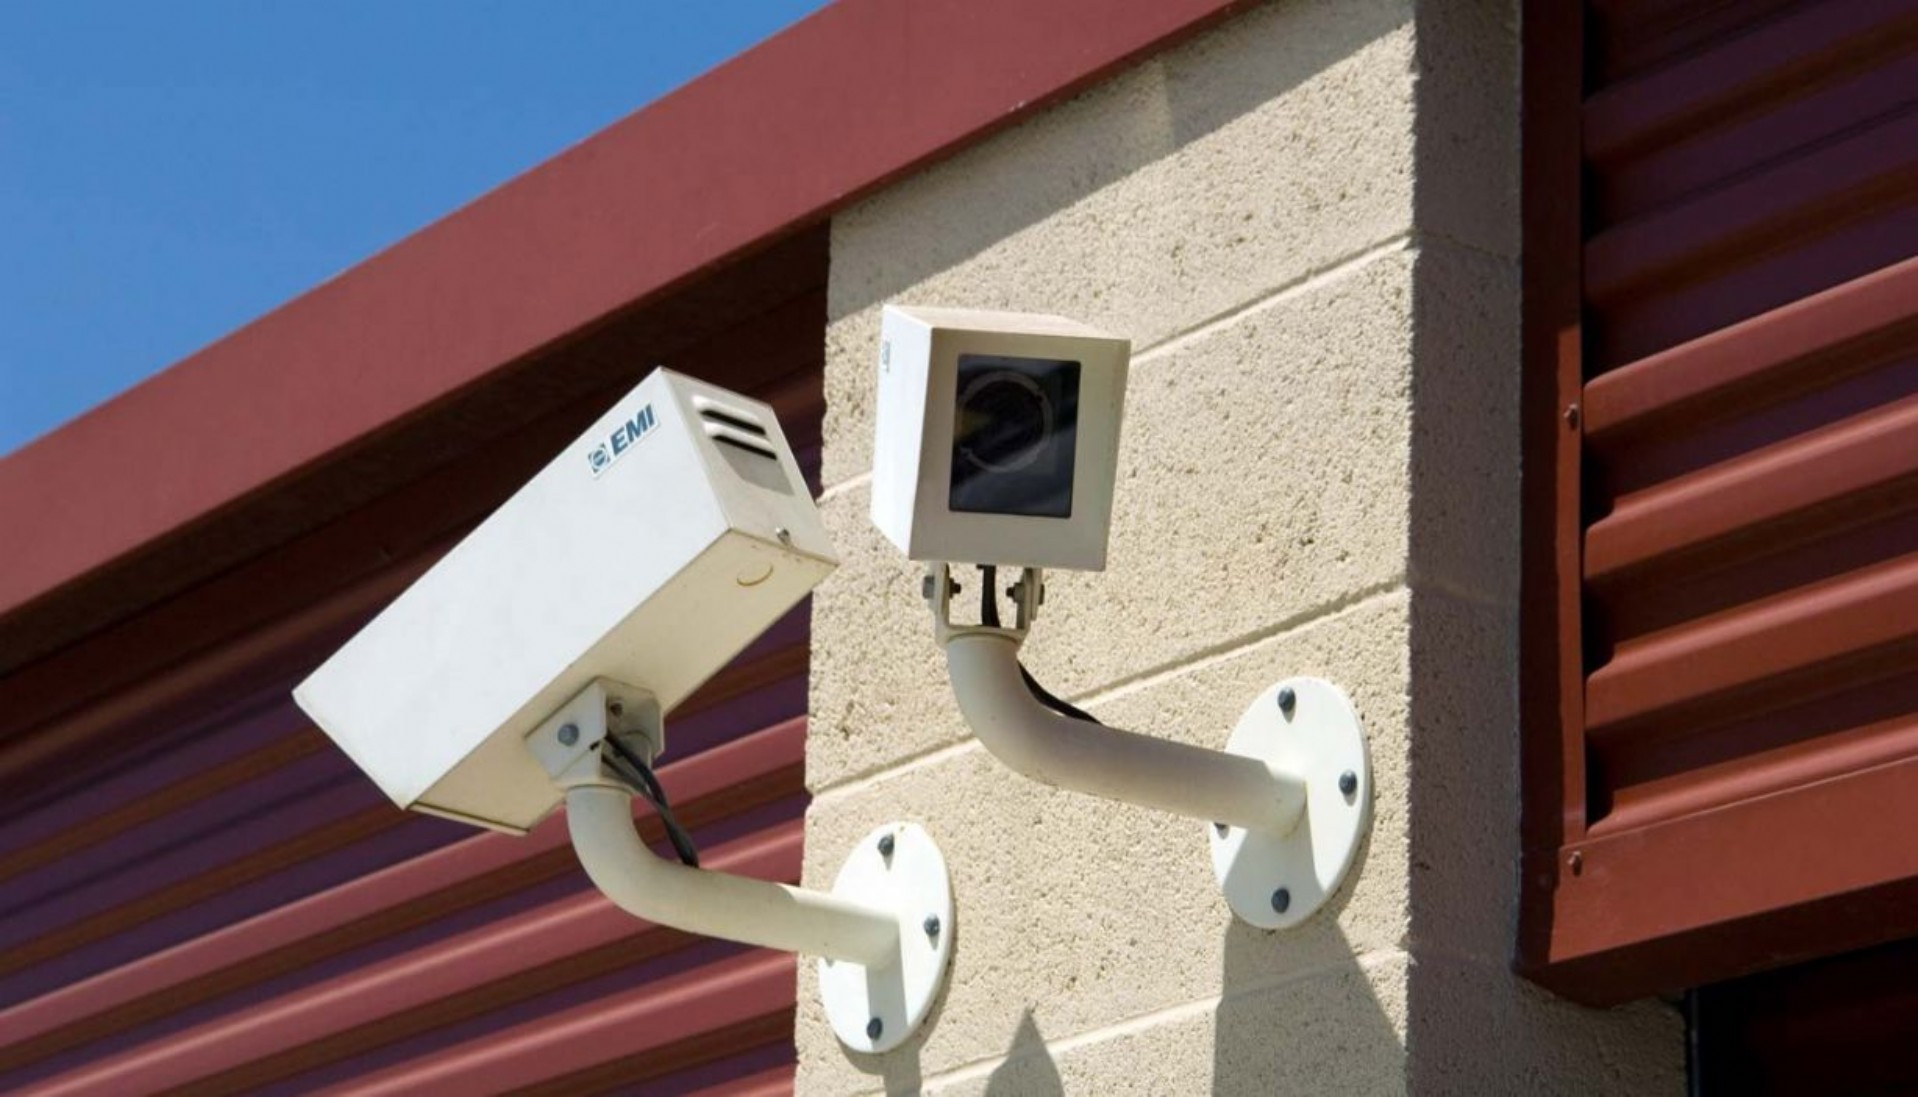 Security camera mounted on building